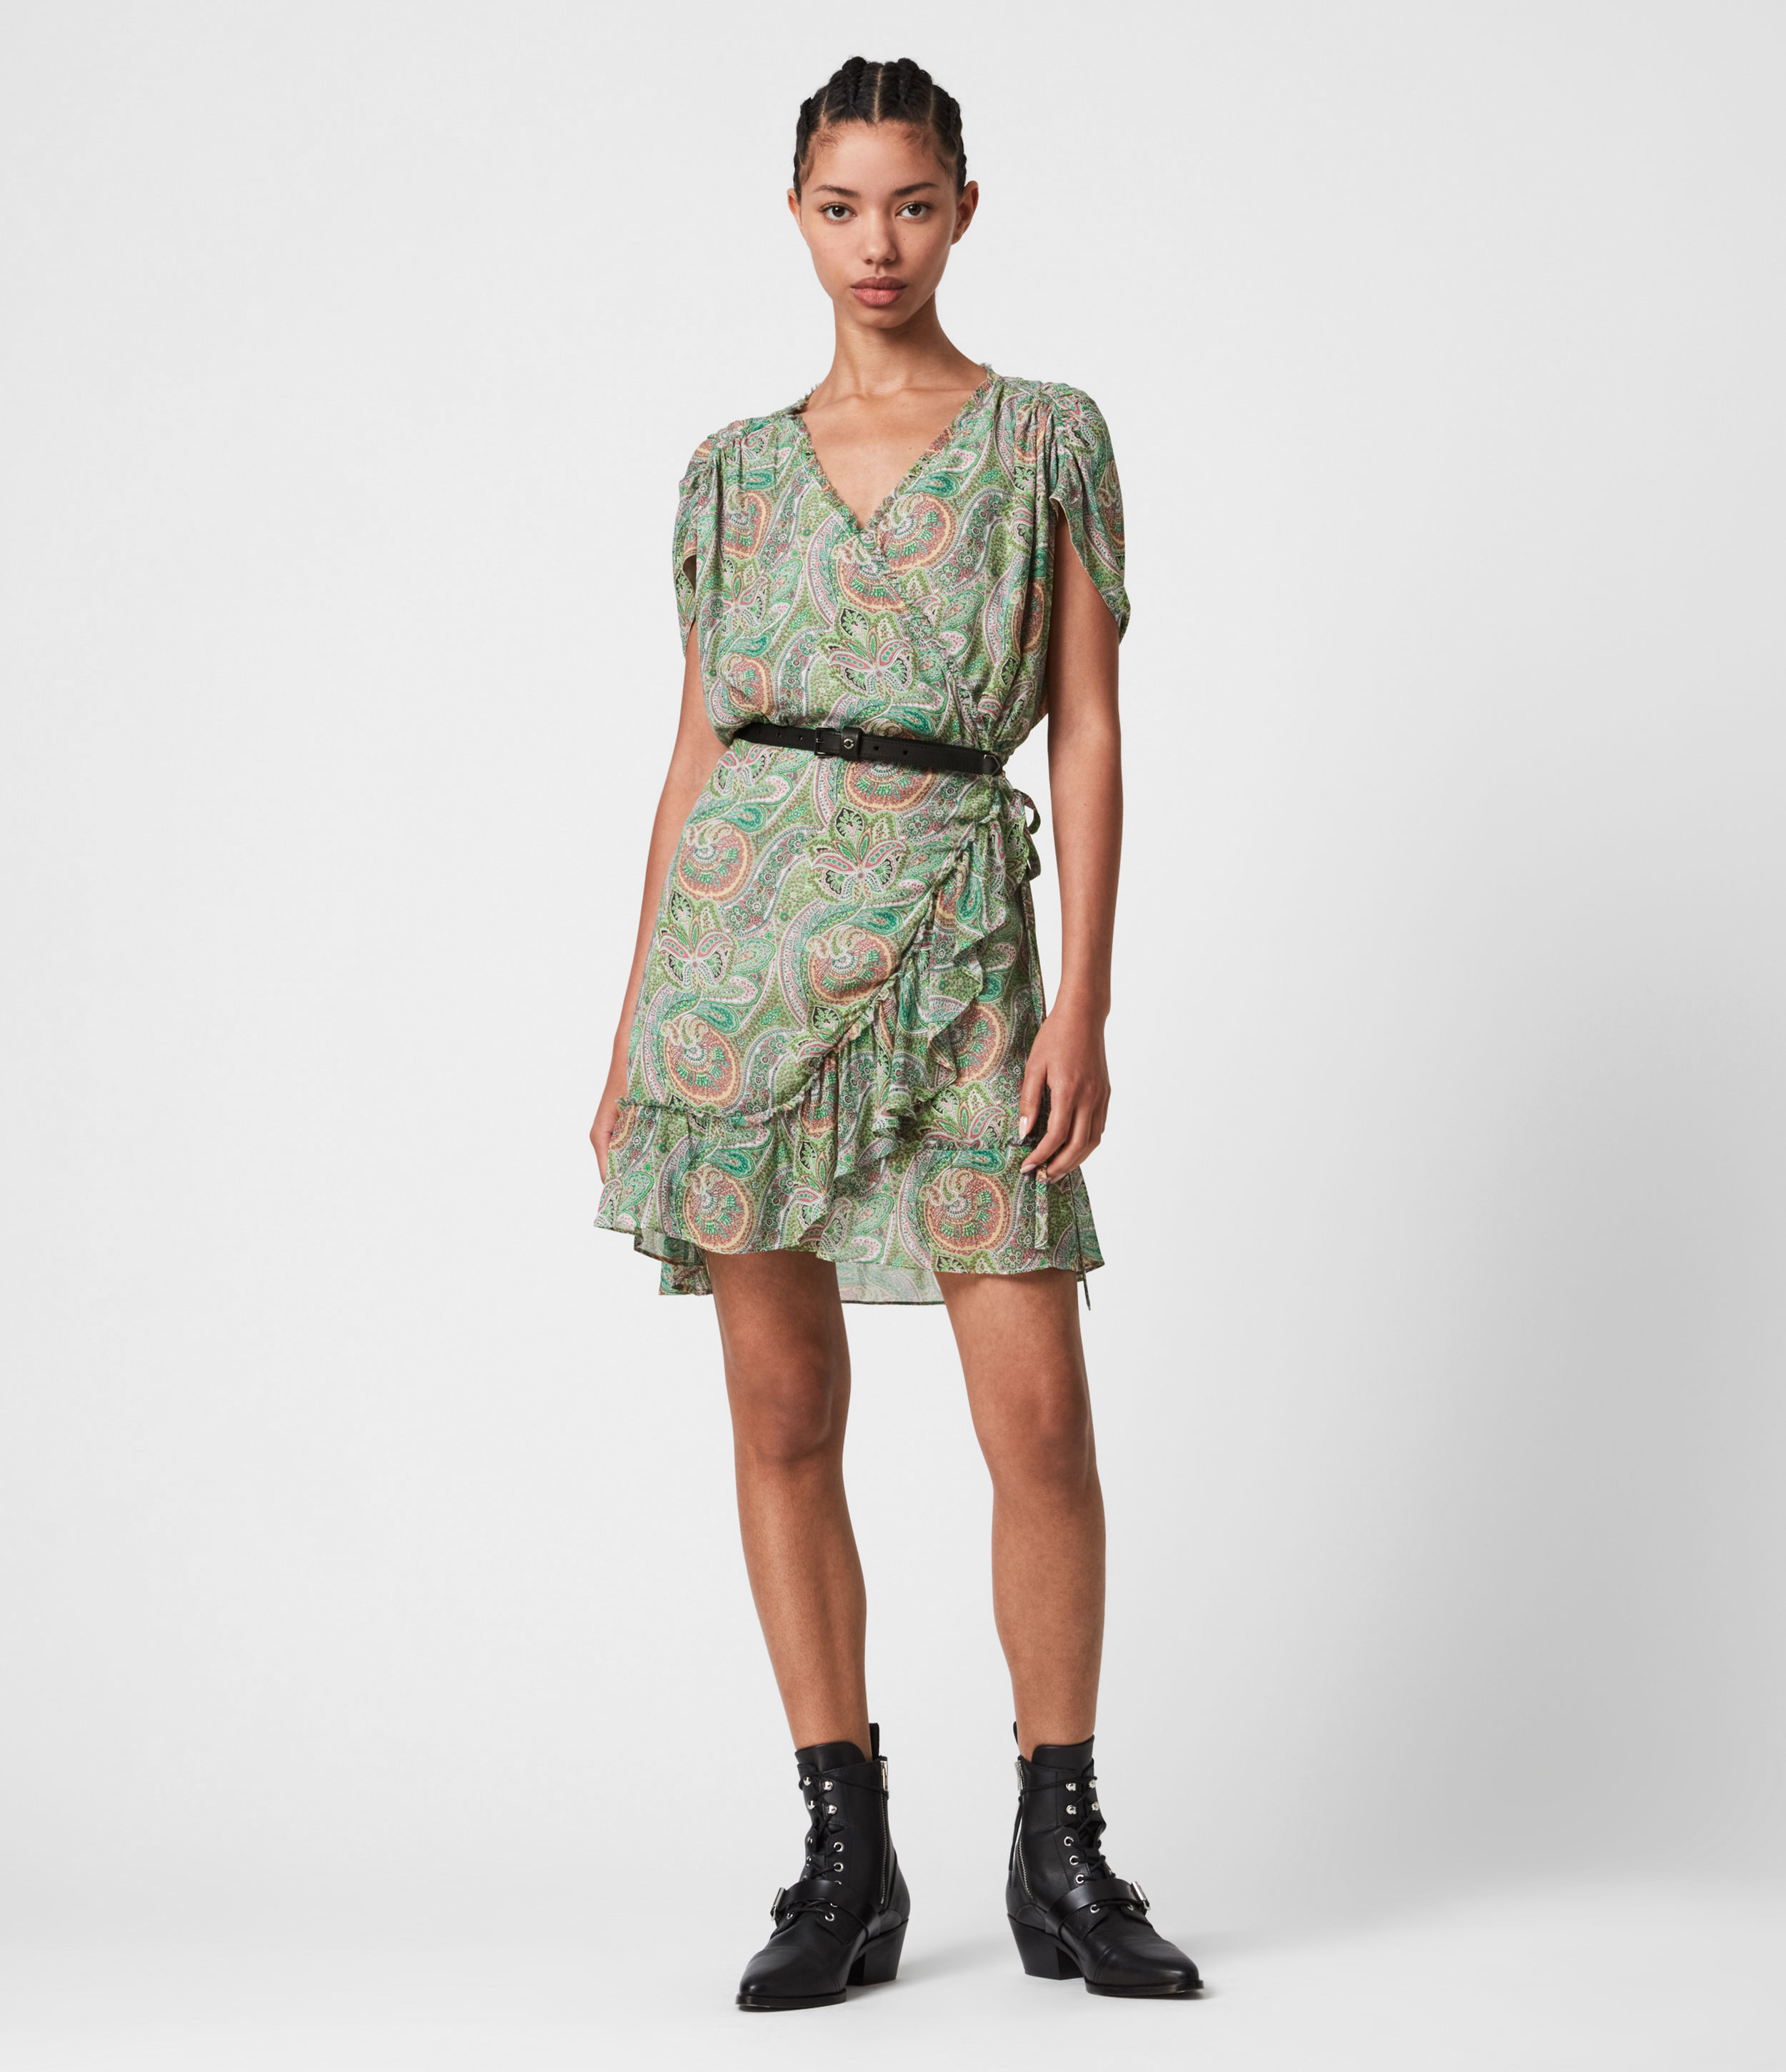 AllSaints Zini Shahmina Dress